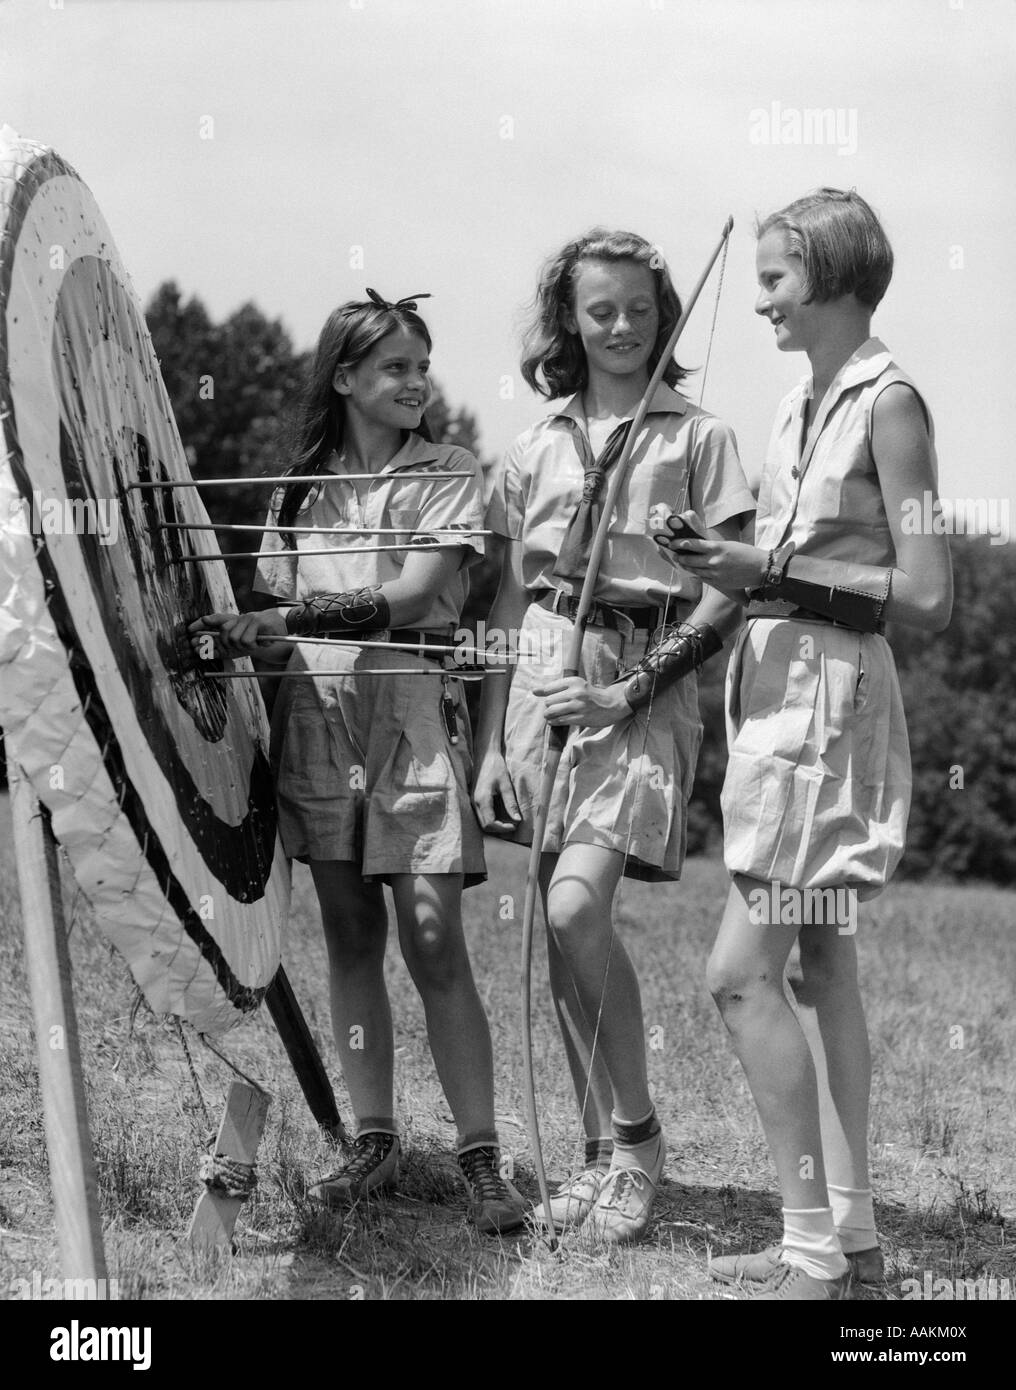 1930s 1940s THREE TEEN GIRLS STANDING BY ARCHERY TARGET BOWS ARROWS - Stock Image